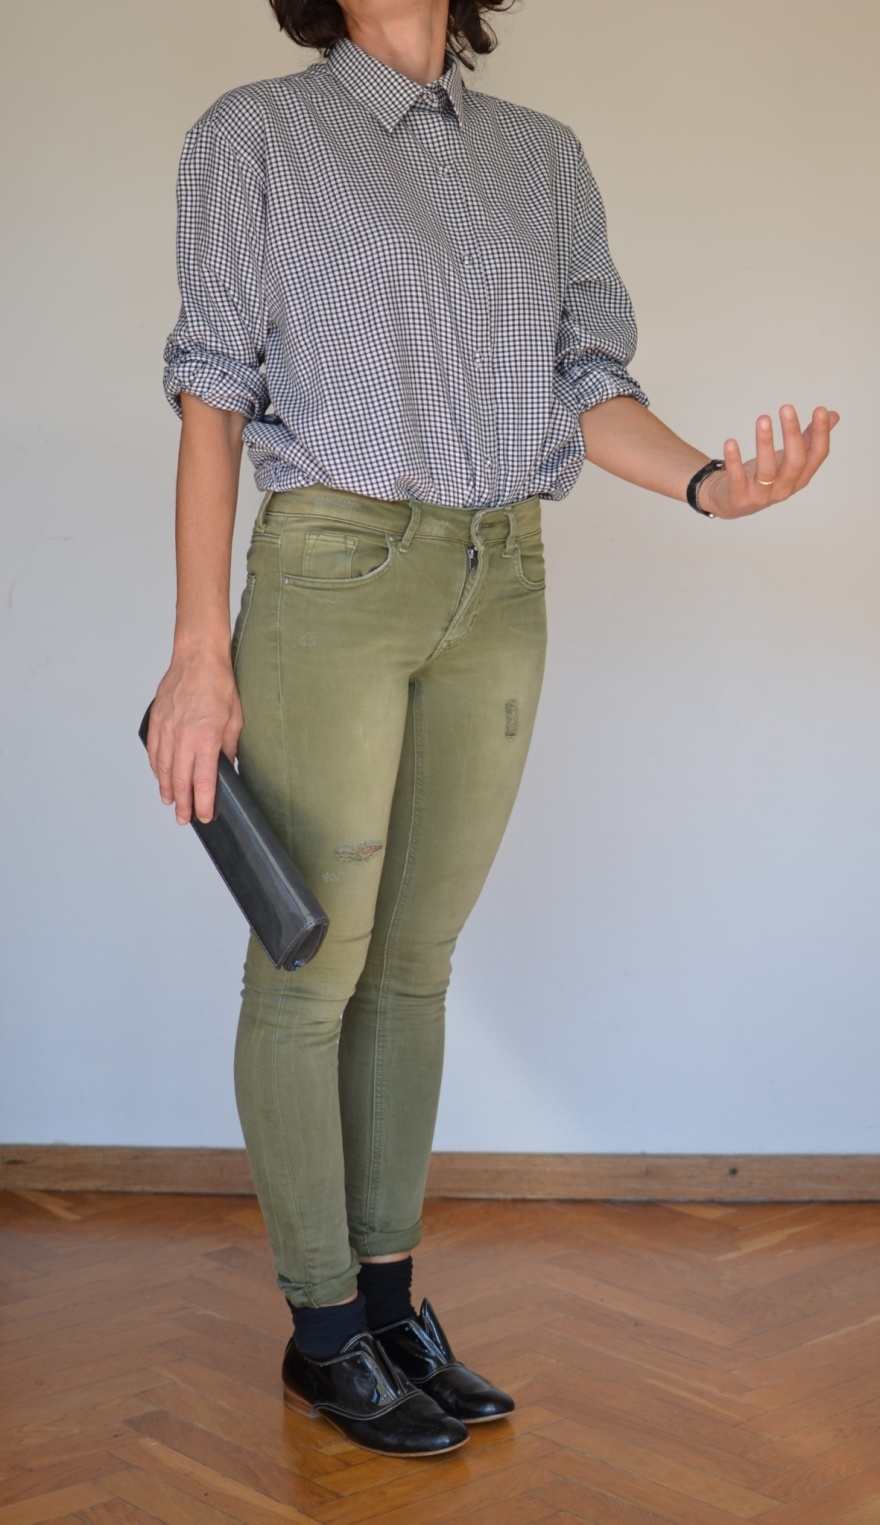 Jeans, denim, green denim, skinny jeans, H&M jeans, camicia a quadrettini. Zara shoes, quadretti bianco e nero, socks, mocassini neri, mocassini, Anastasia style, Florence, new outfit, casual outfit, outfit for work